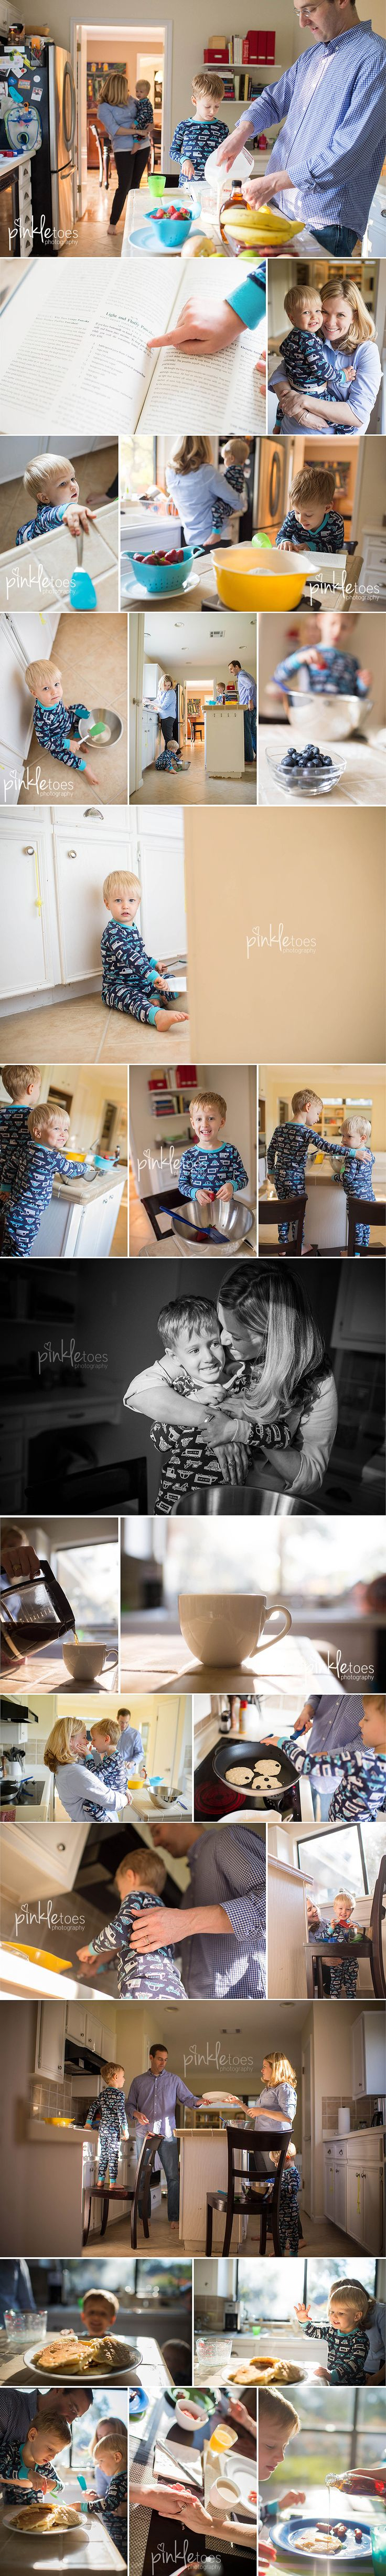 ms-austin-family-lifestyle-in-home-candid-modern-lifestyle-photography-pinkle-toes